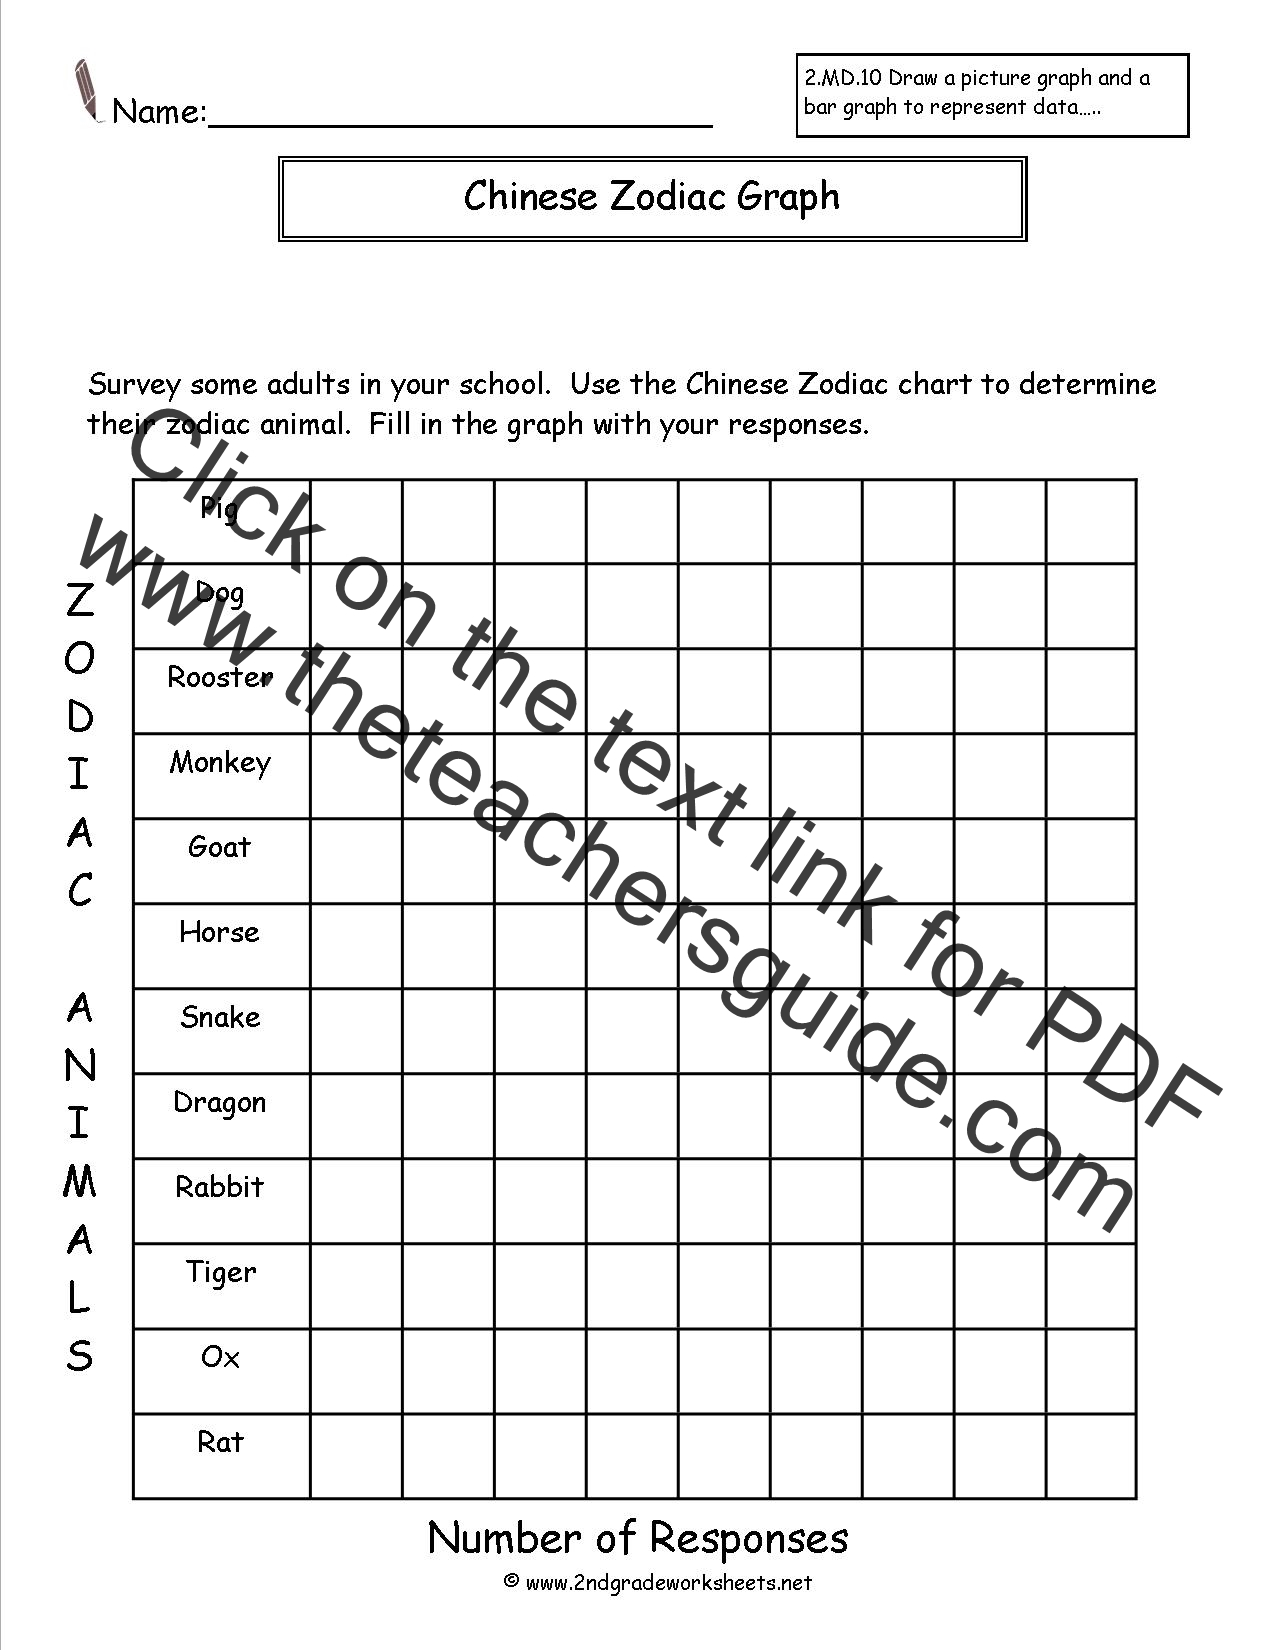 ccss 2.md.10 worksheets, represent and interpret data worksheets